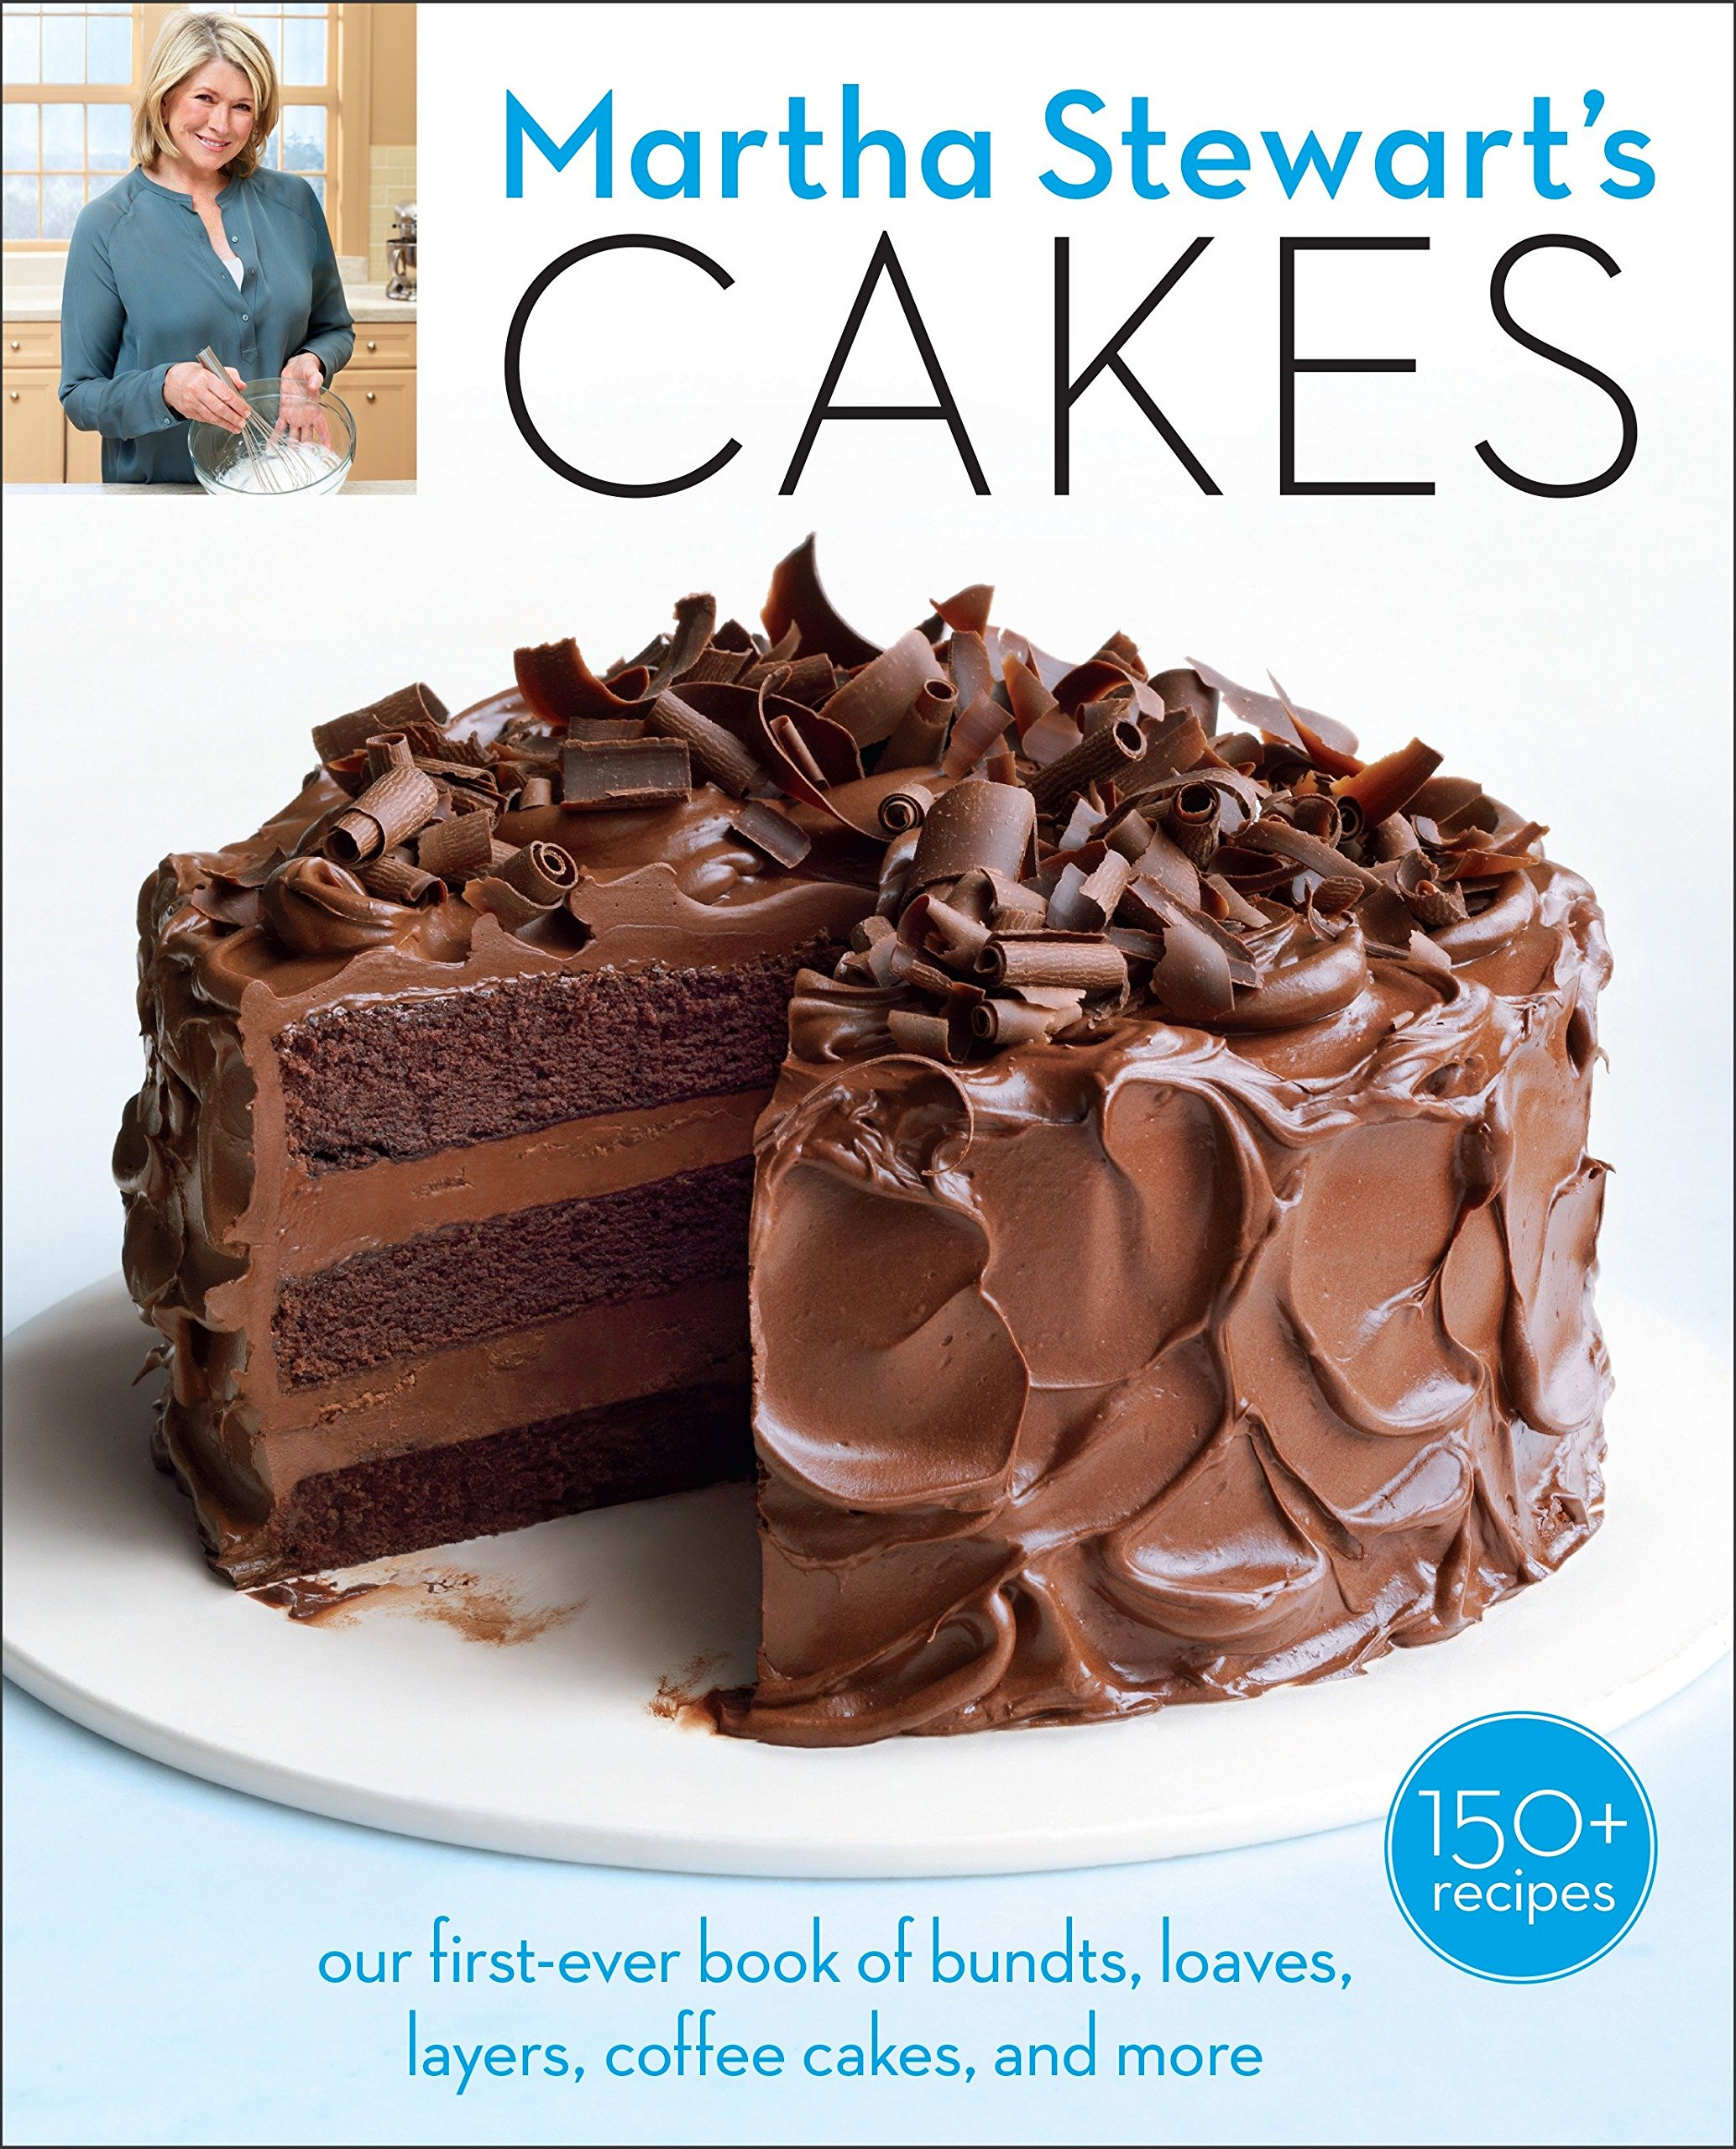 91%2B2IUkLQHL - Martha Stewart's Cakes: our first-ever book of bundts, loaves, layers, coffee cakes, and more